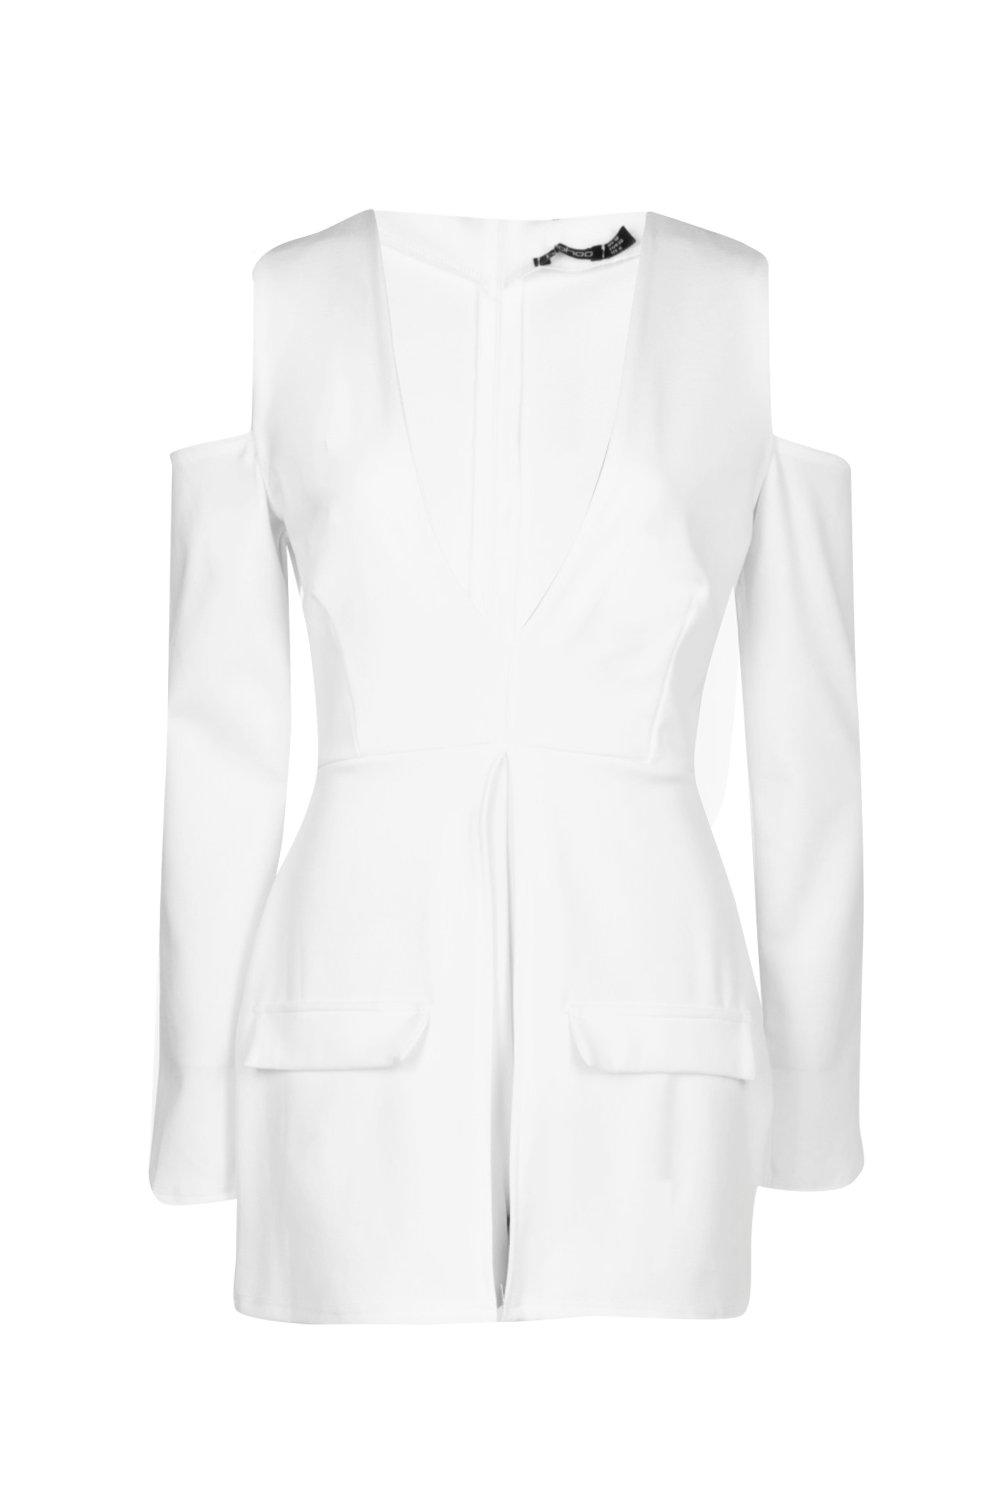 2907d02974 Boohoo Womens Lois Blazer Style Cut Out Shoulder Playsuit